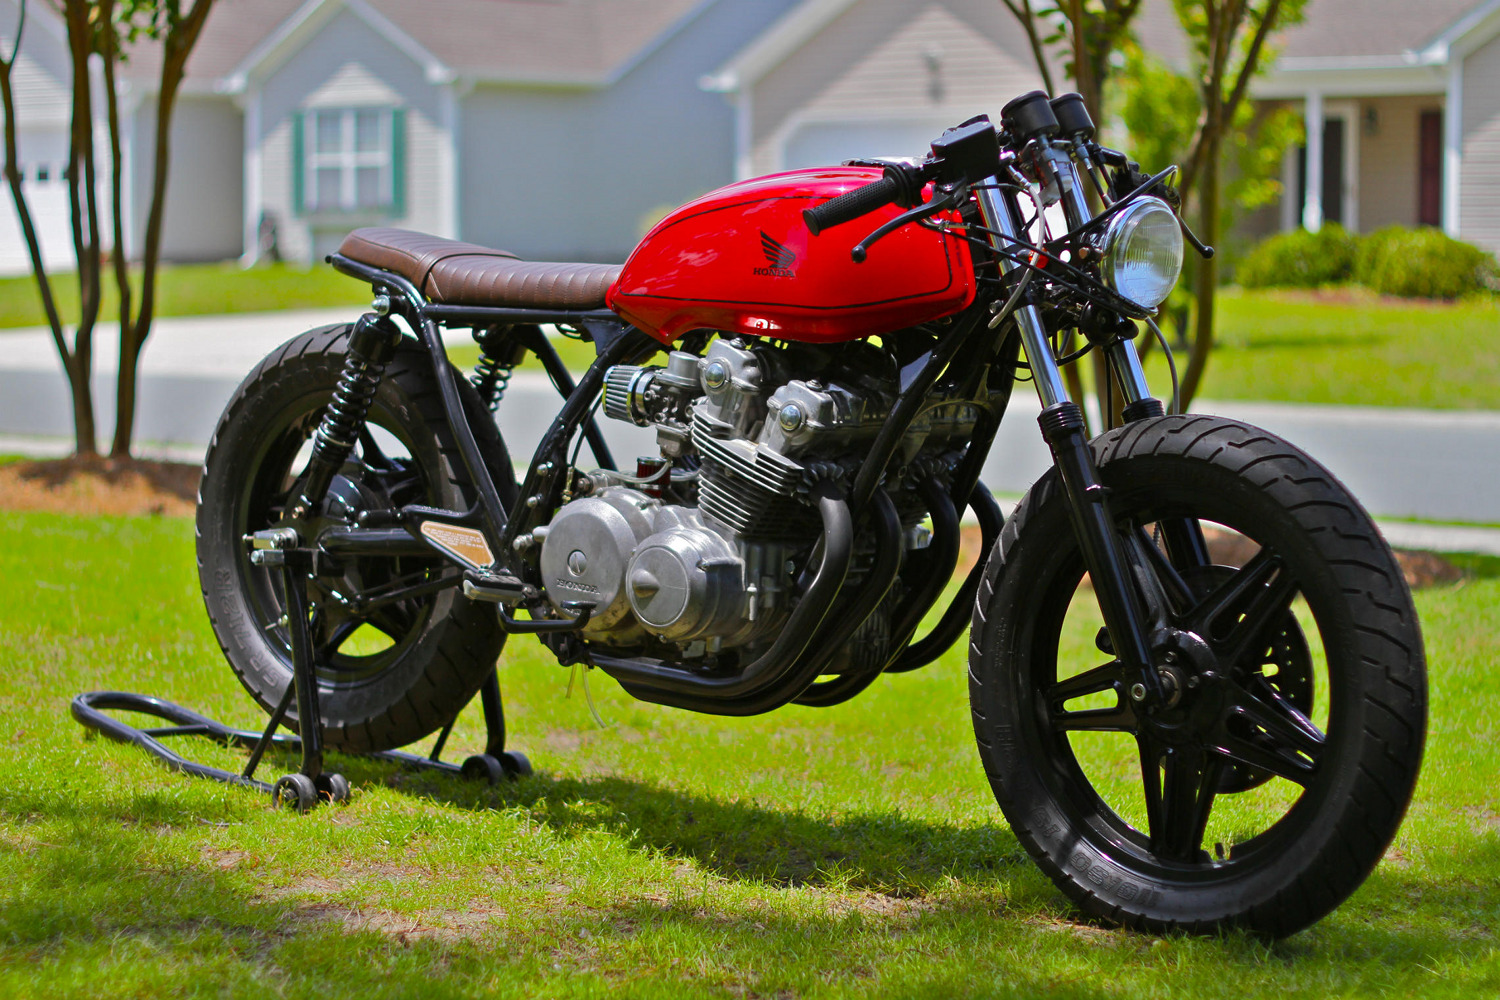 Honda Cb750 Brat Cafe on honda cb750 custom cafe racer